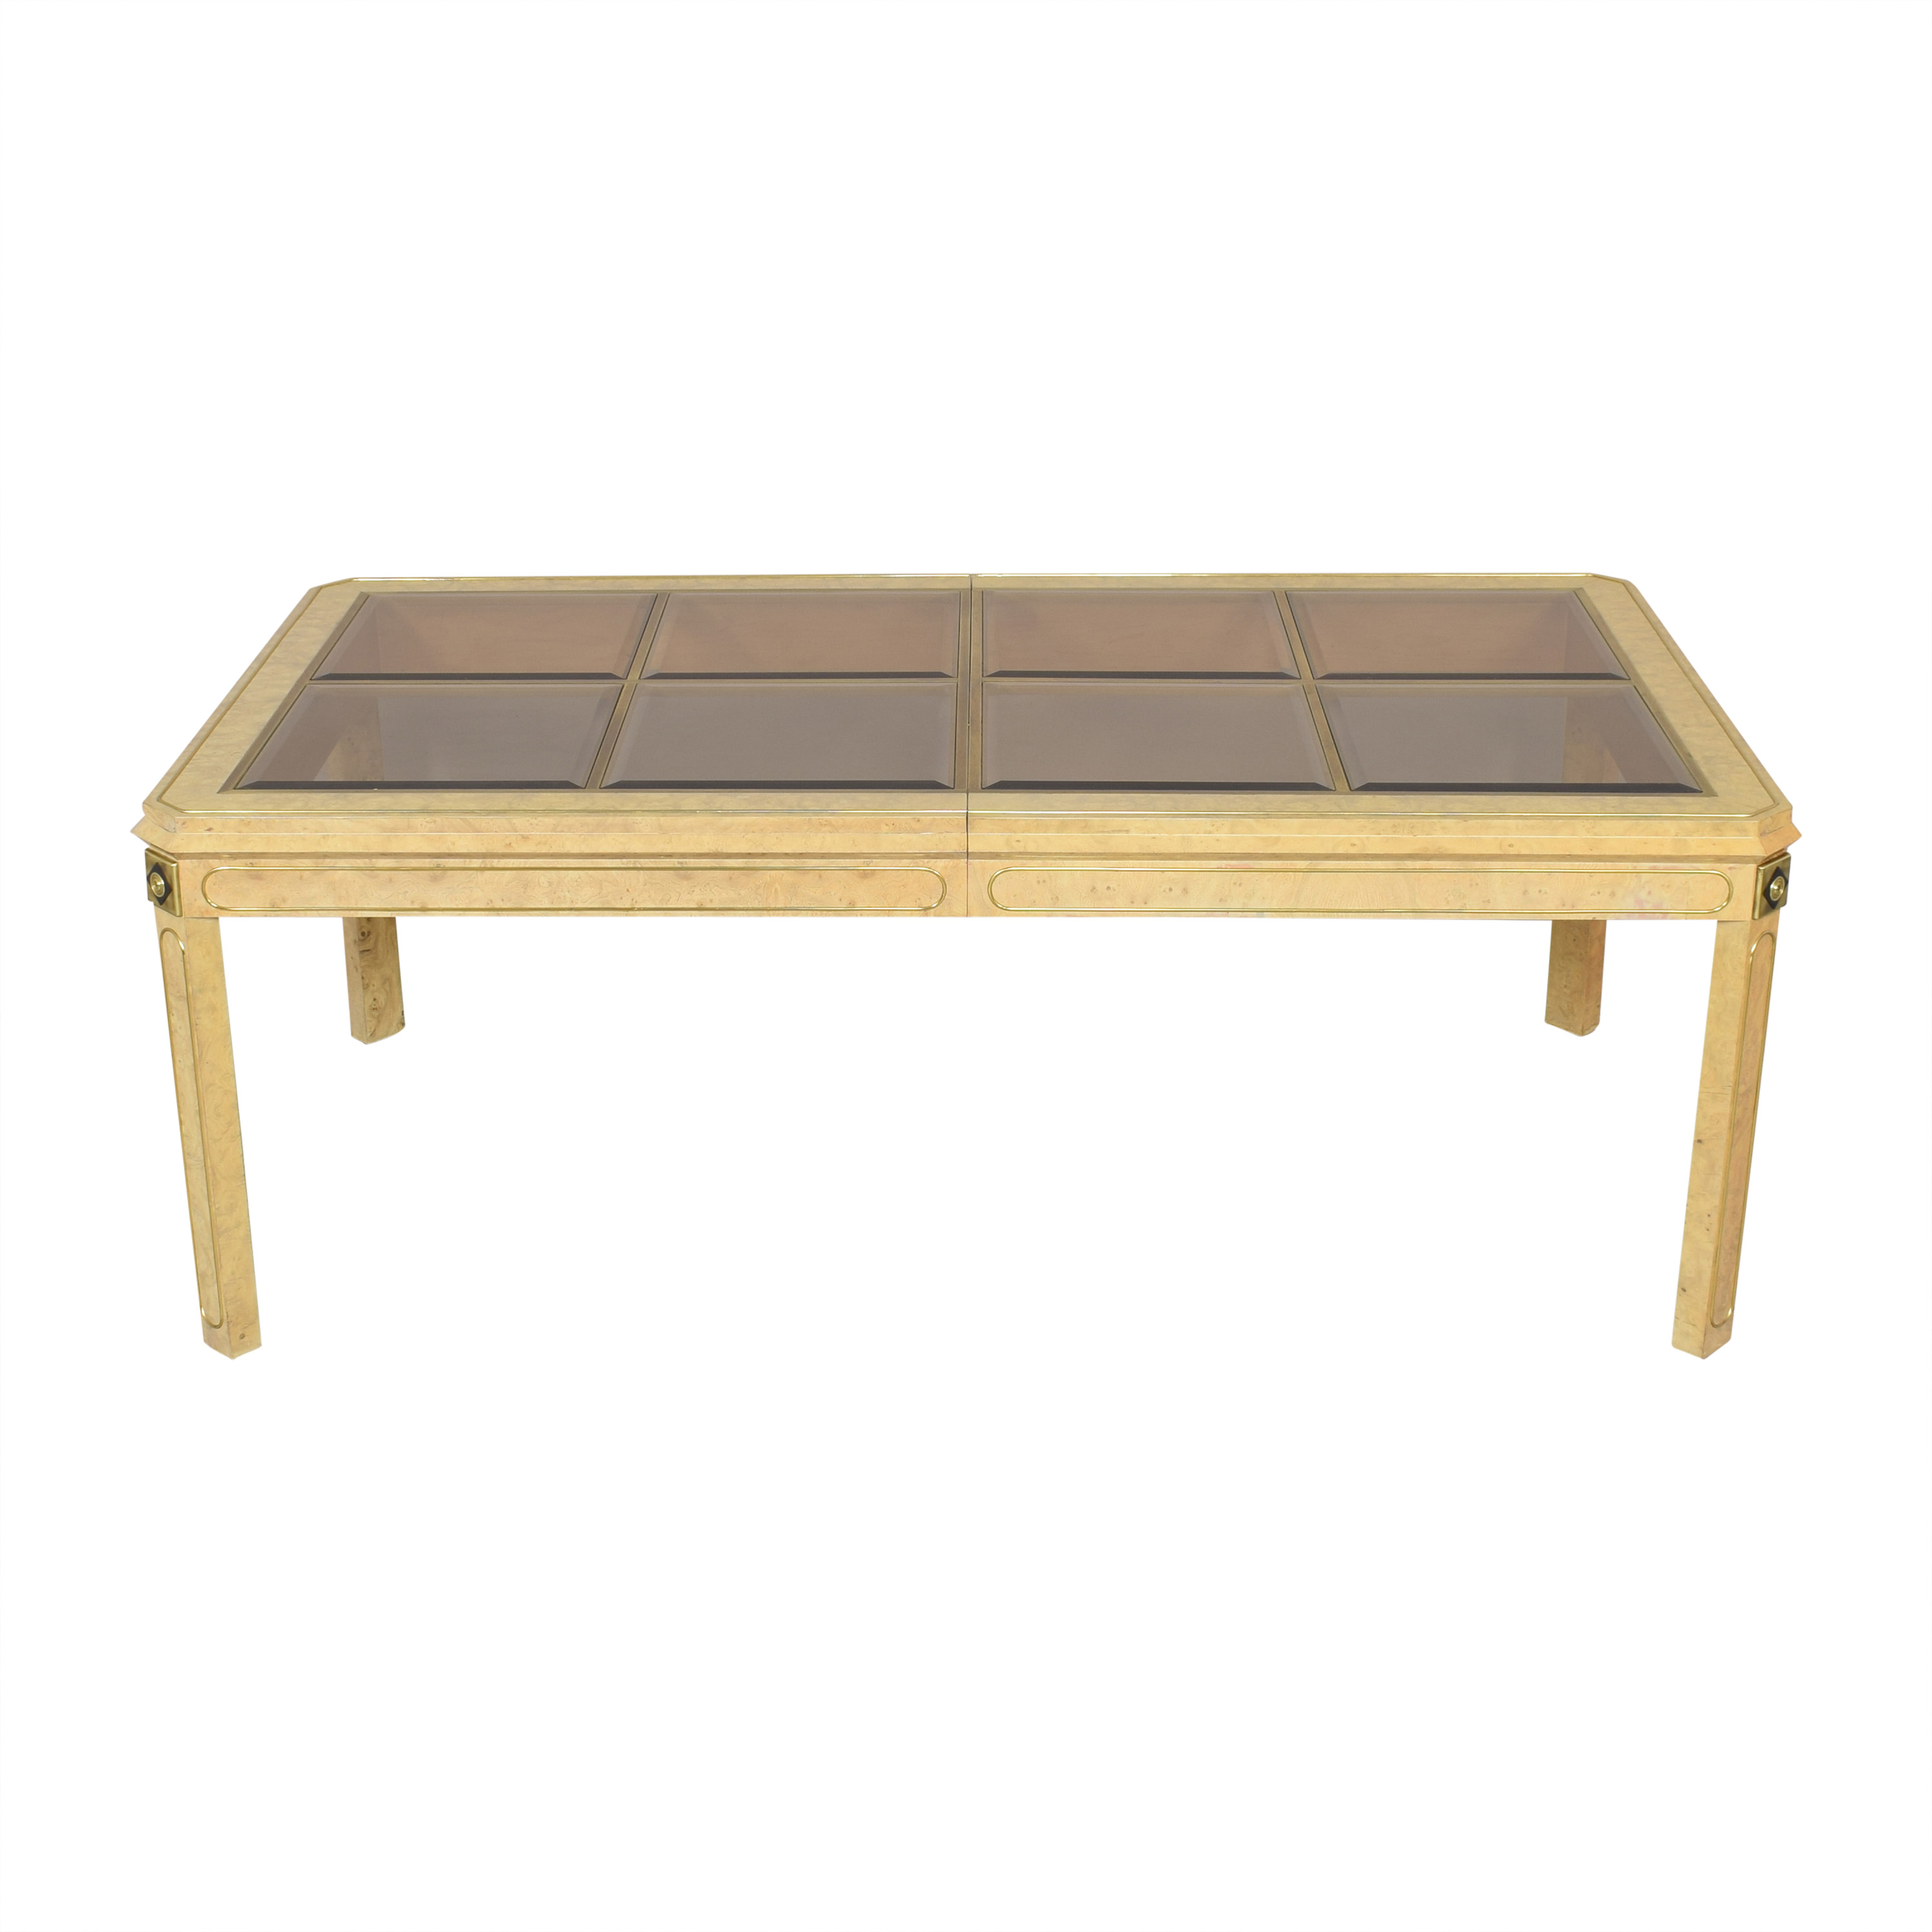 Provincial Extendable Dining Table used